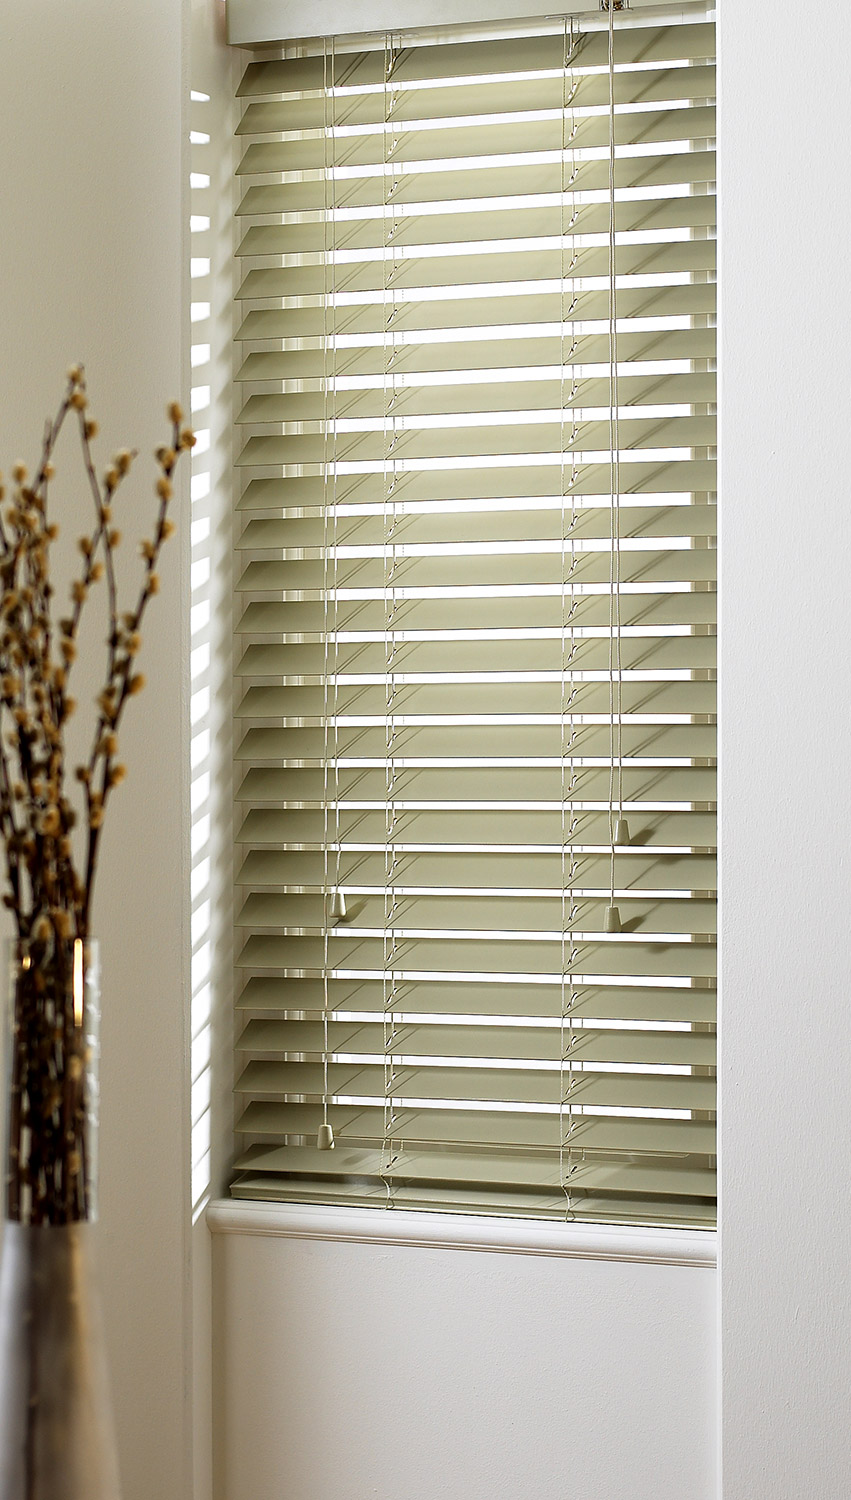 SLX Wood Blinds 50mm Apple Blind with Strings